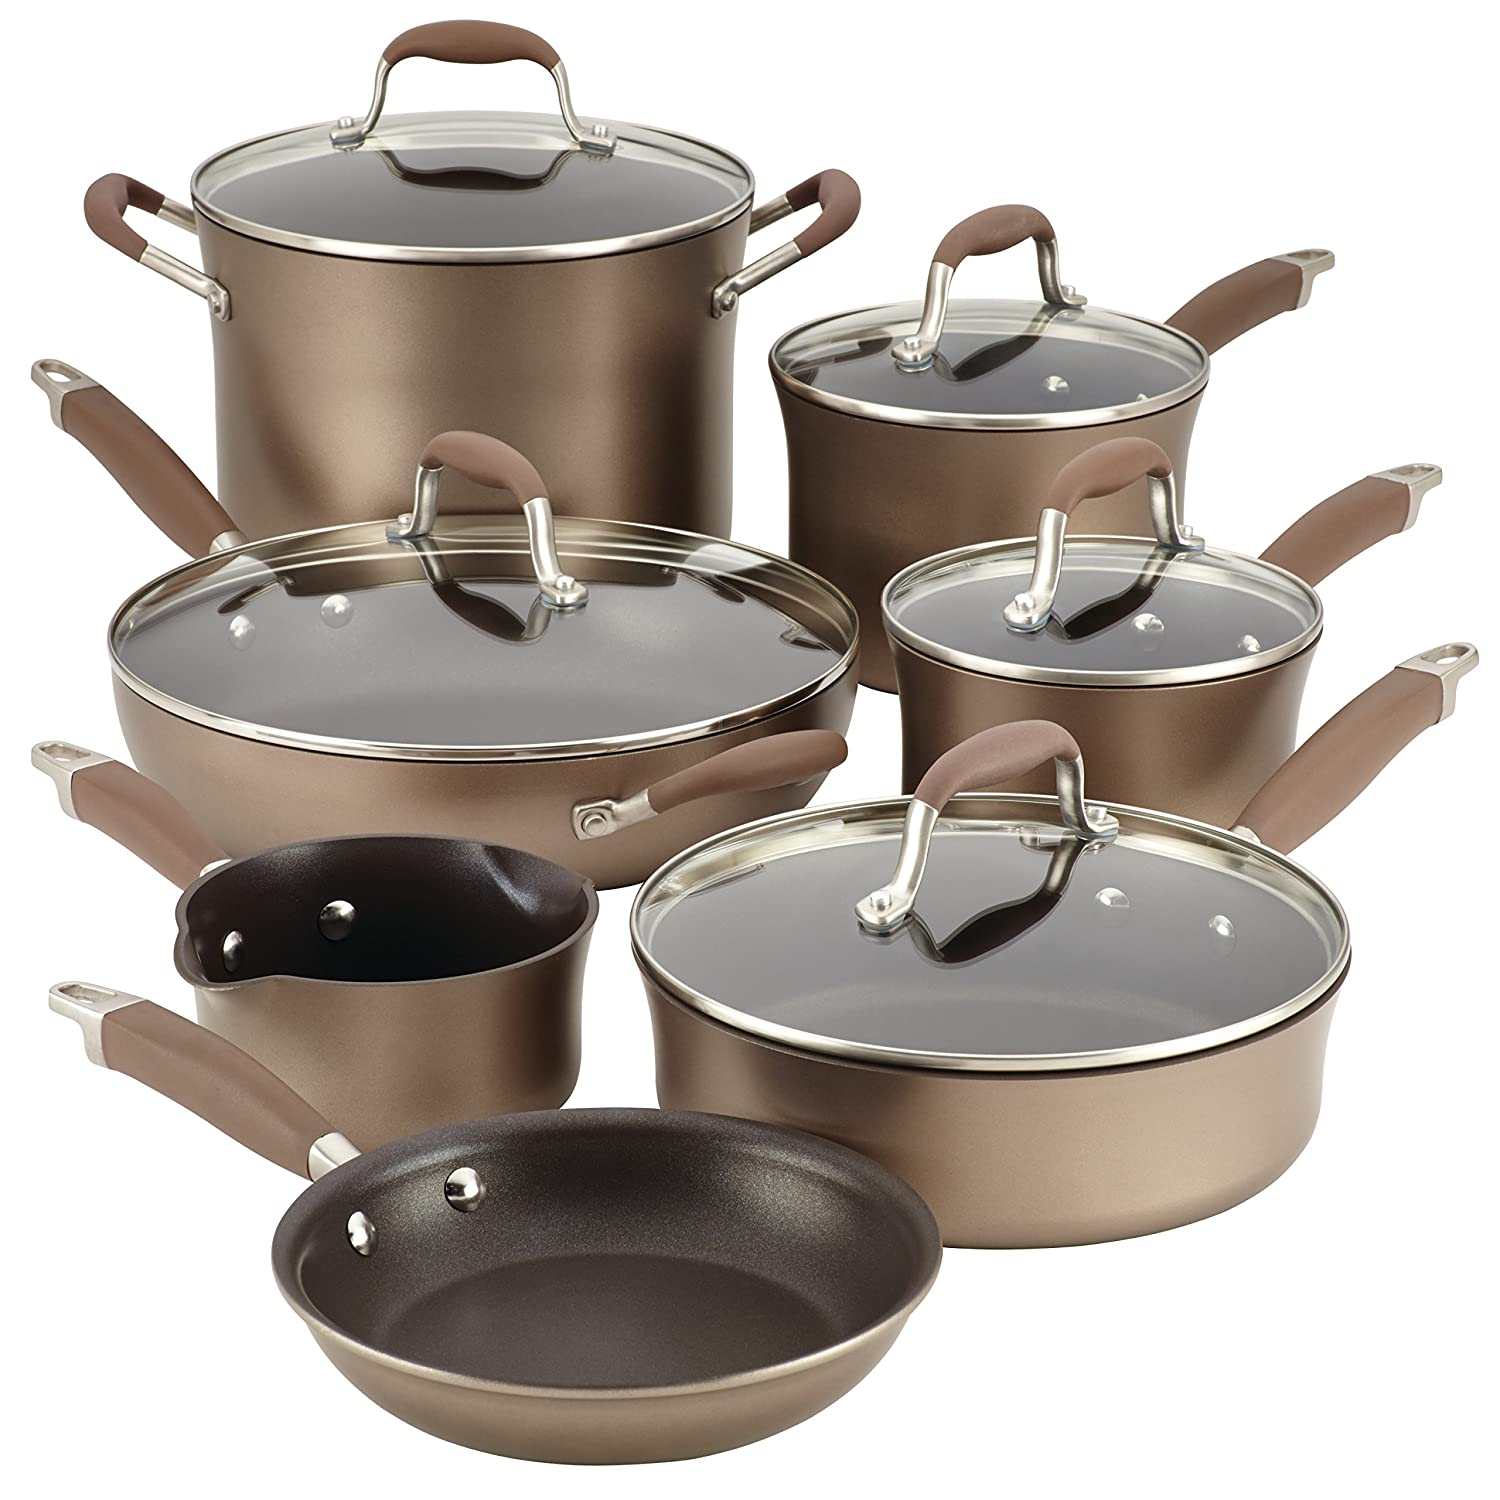 Anolon Advanced Bronze Hard-Anodized Nonstick 12-Piece Cookware Set